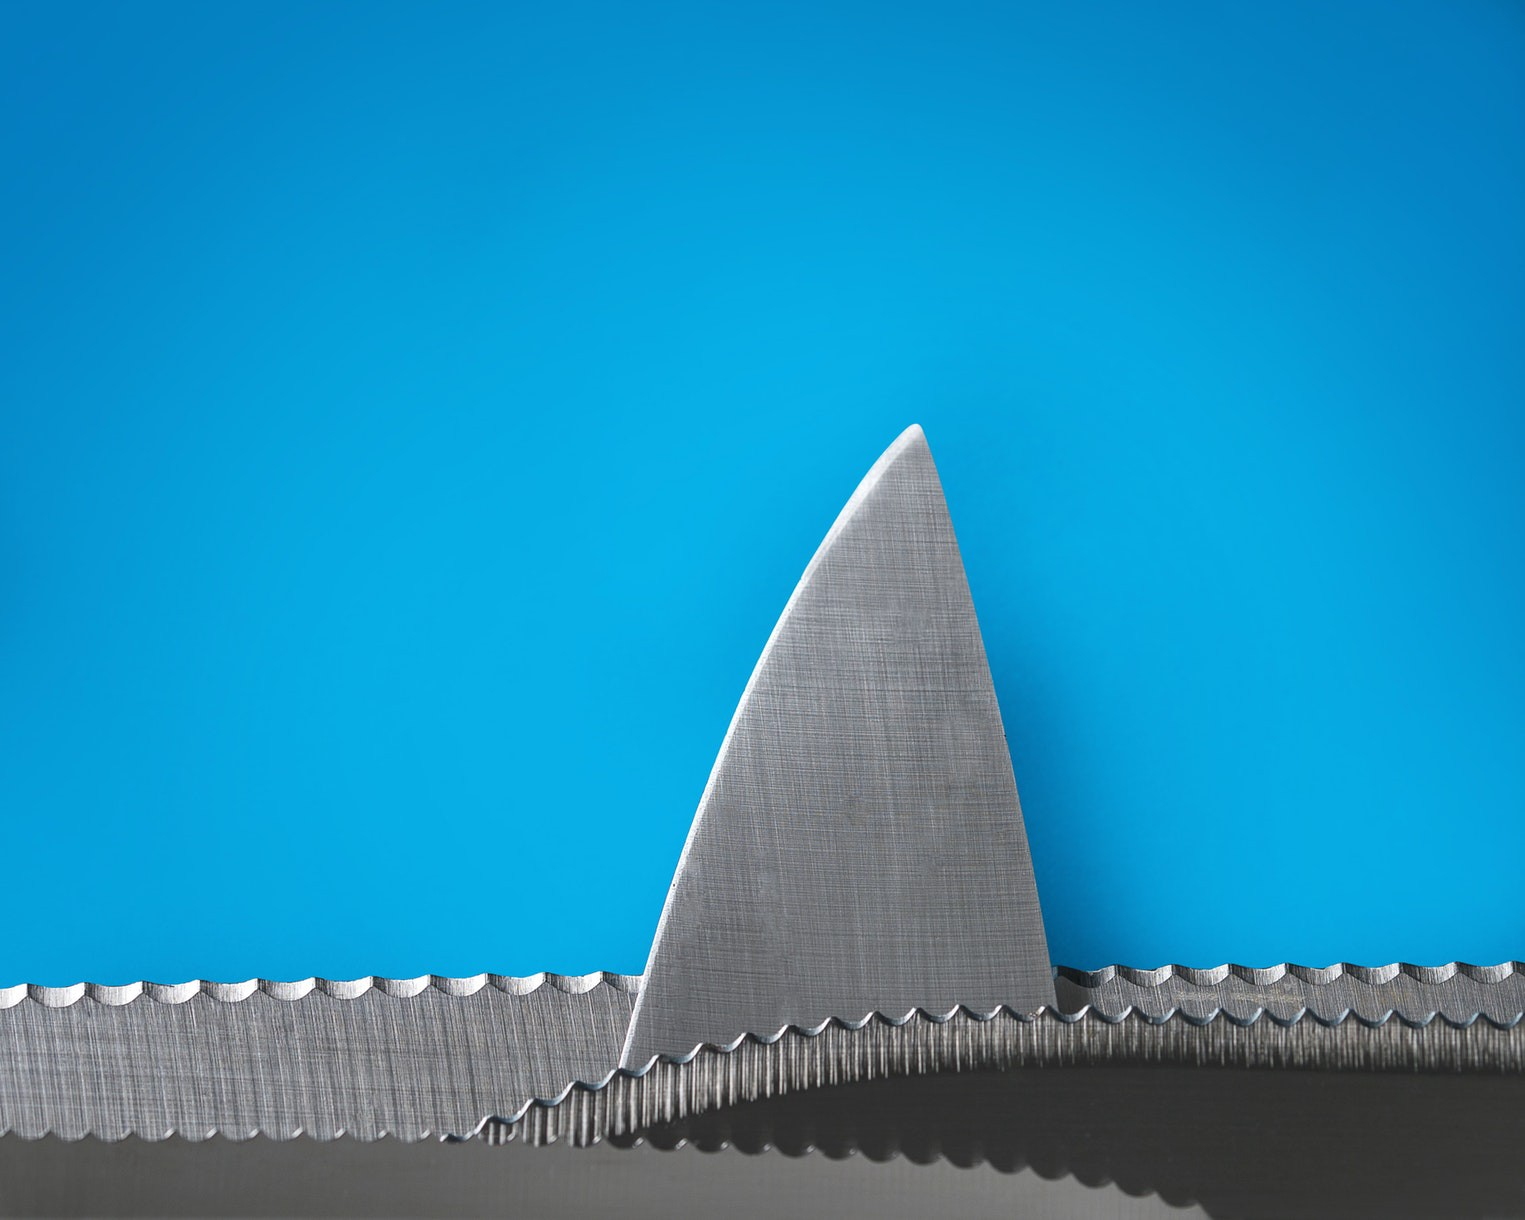 /just-give-me-a-sharp-knife-google-9b20c782abe9 feature image